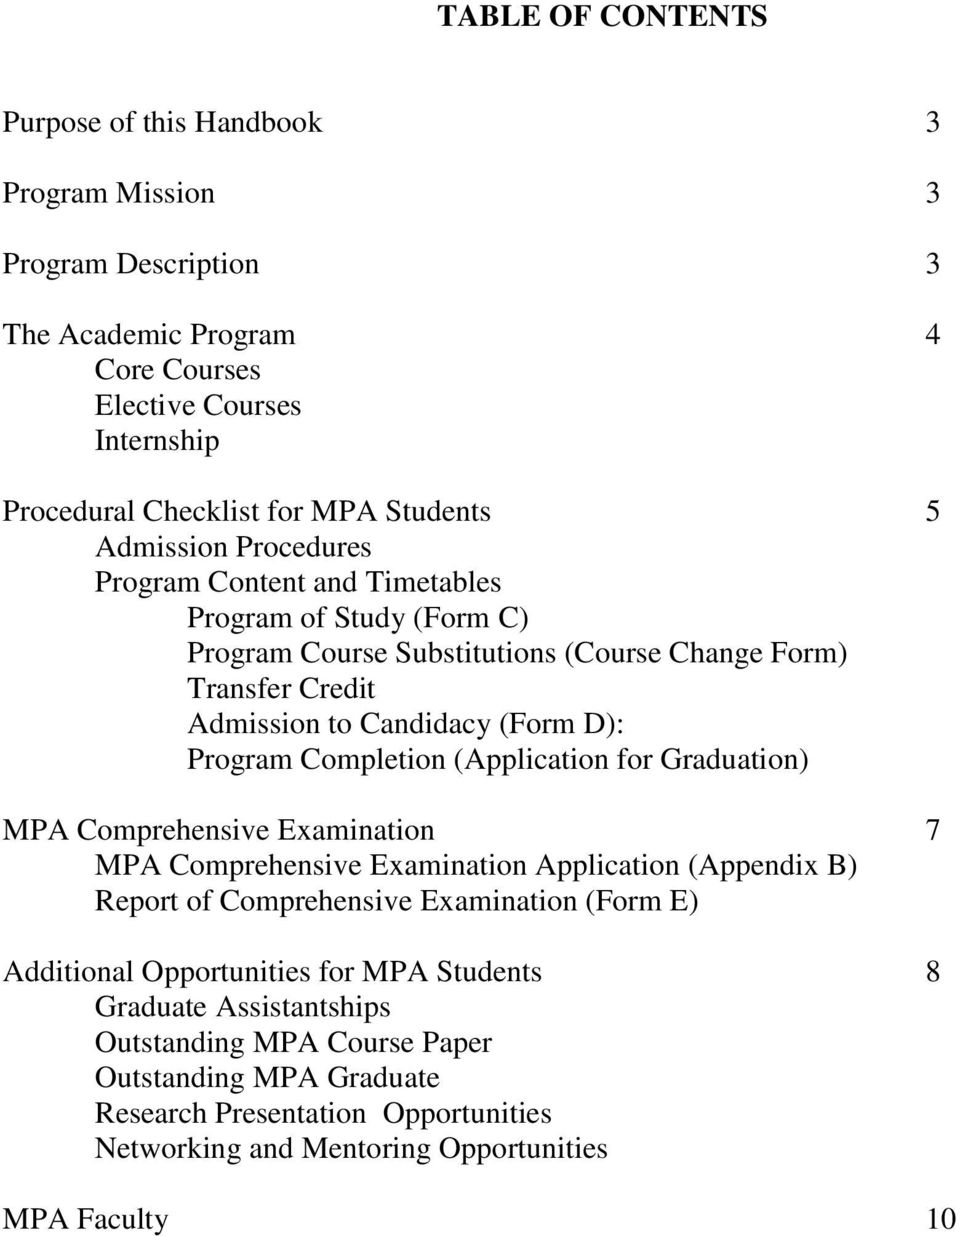 Completion (Application for Graduation) MPA Comprehensive Examination 7 MPA Comprehensive Examination Application (Appendix B) Report of Comprehensive Examination (Form E) Additional